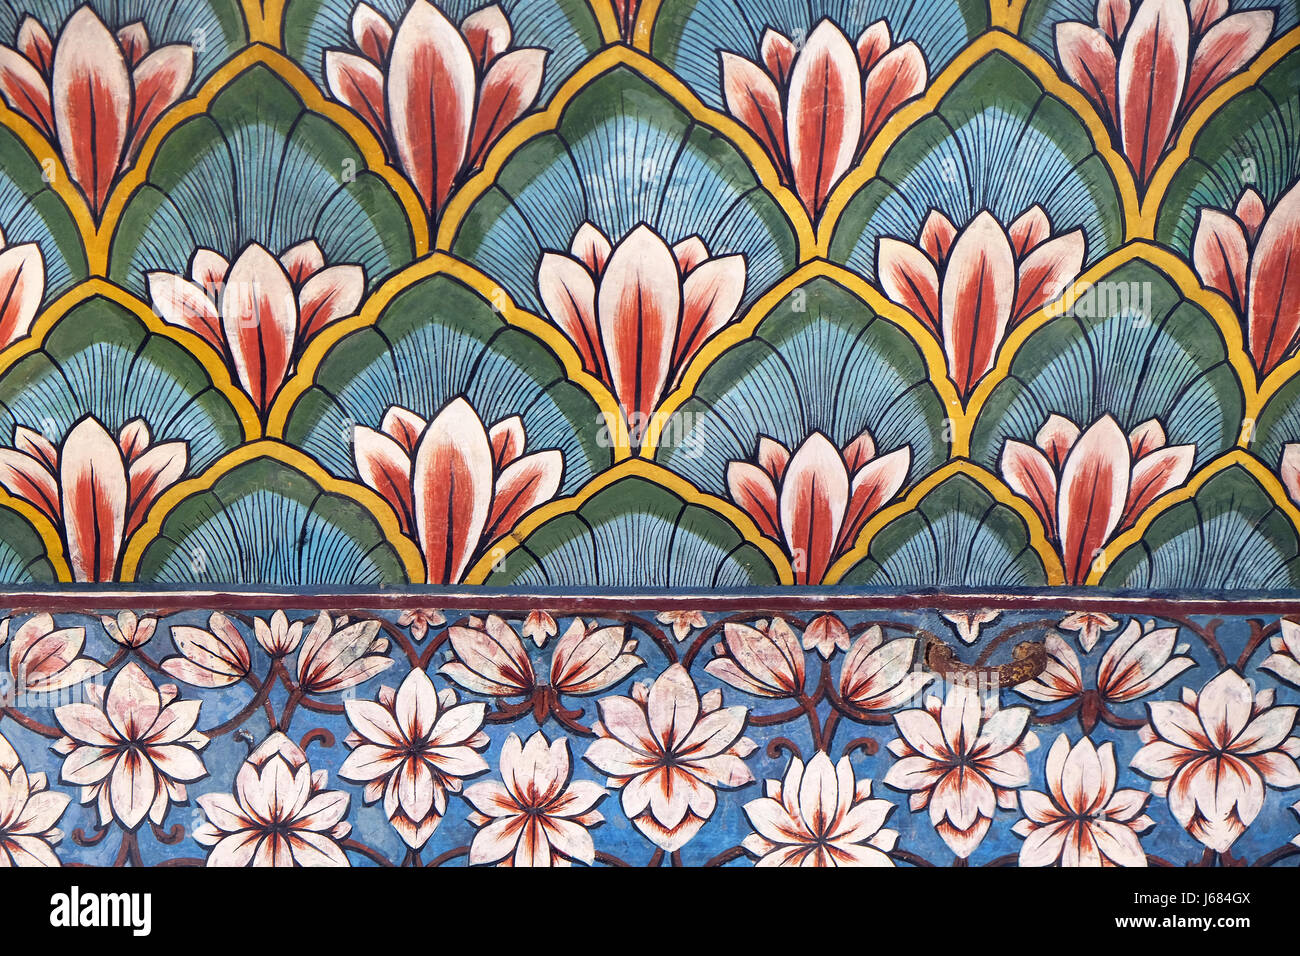 Wall Paintings In The Chandra Mahal Jaipur City Palace In Jaipur